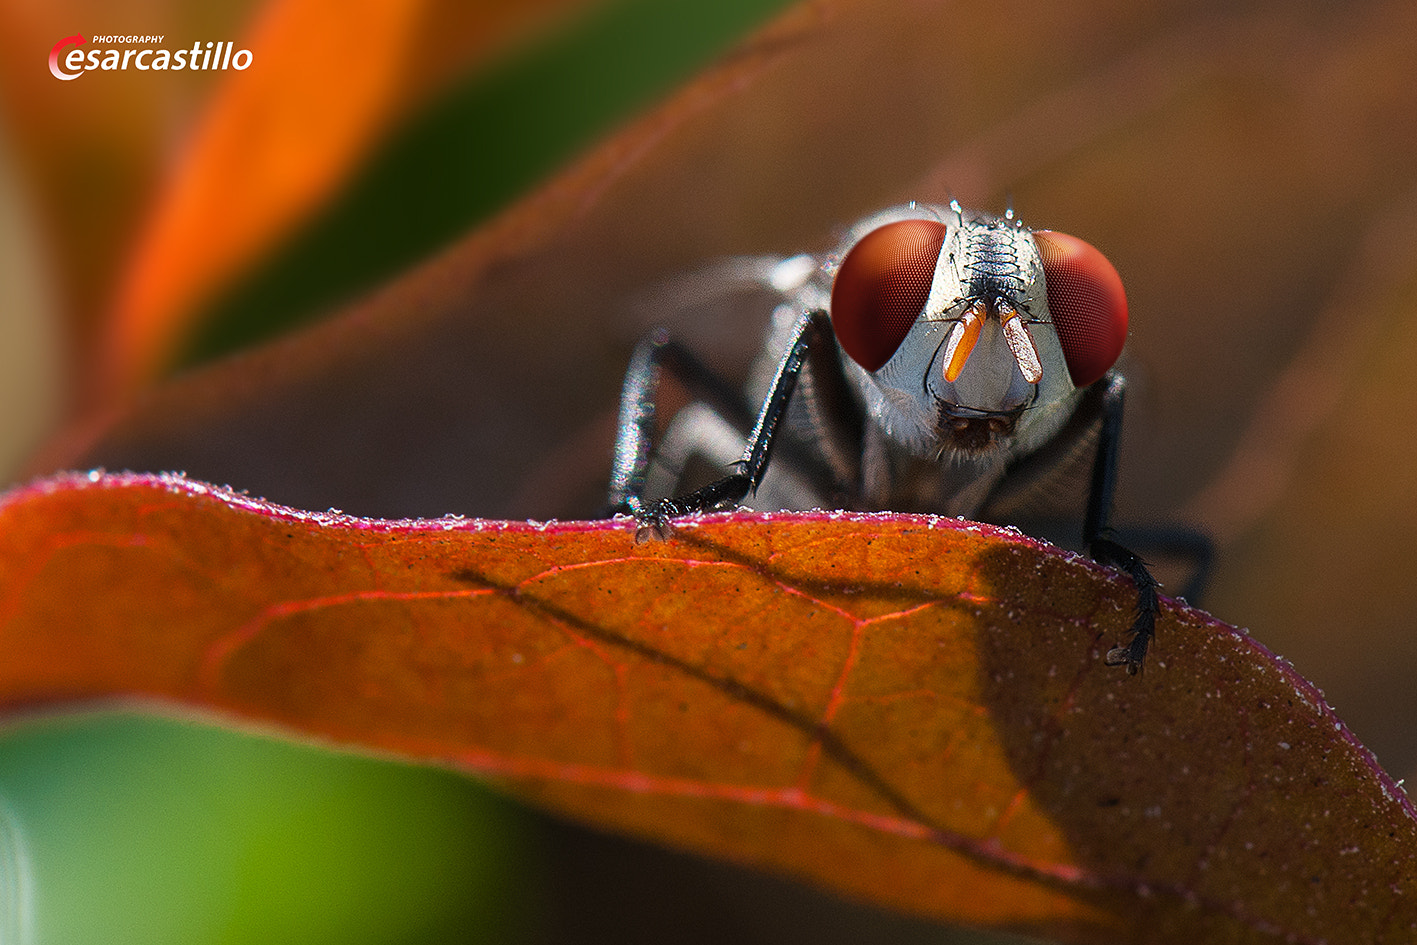 Photograph Ready For Take Off by Cesar Castillo on 500px